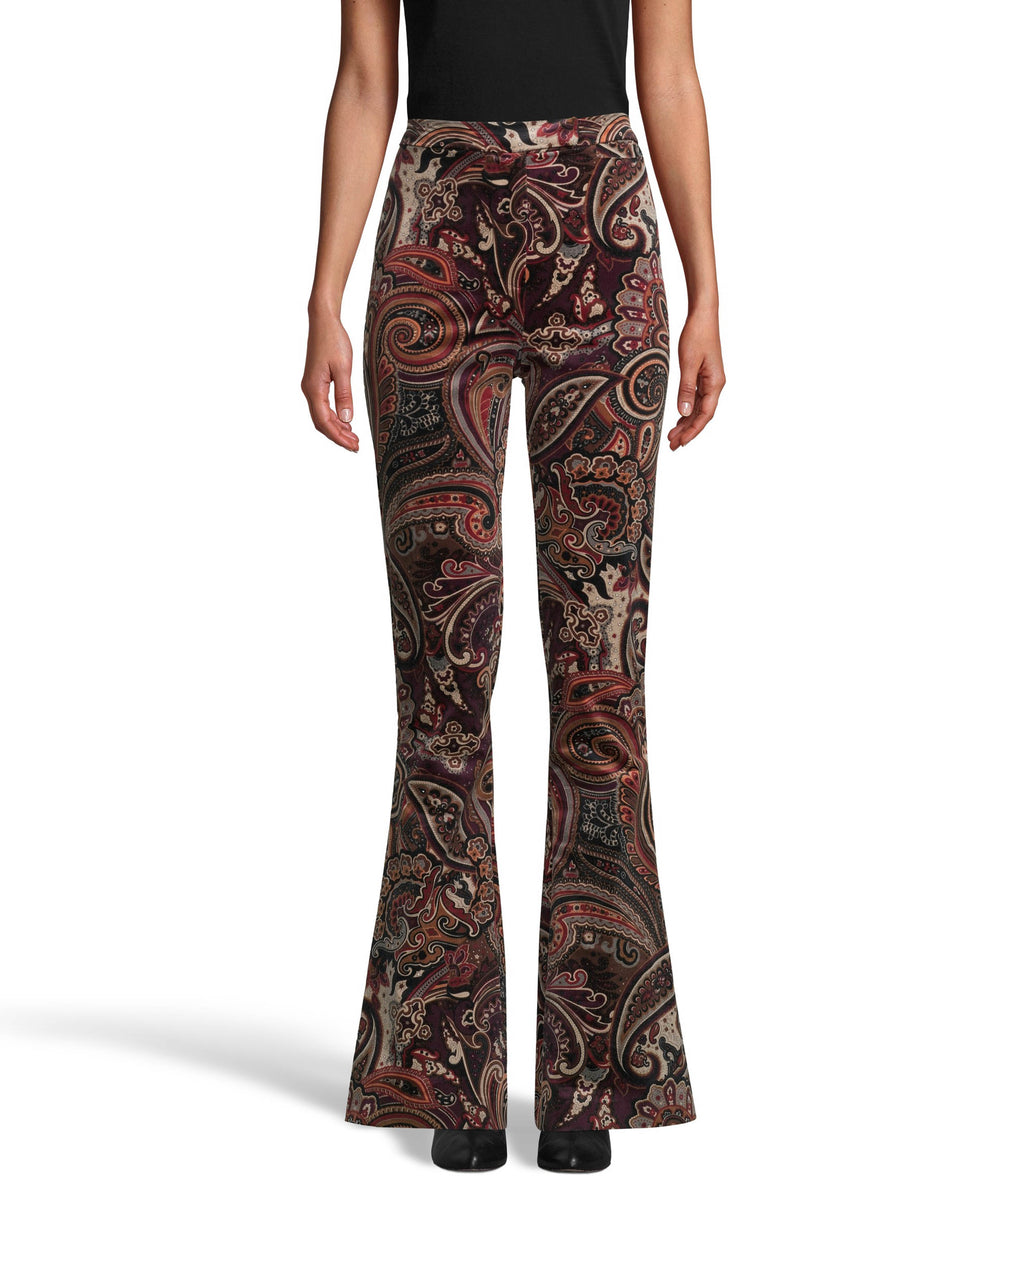 CP18123 - PAISLEY VELVETEEN BELL BOTTOM PANT - outerwear - blazers - Designed in super soft velvet in our new paisley print, these bell bottom pants are sure to standout. This high waisted style features a concealed hook and bar and zipper for closure for a tailored look. Add 1 line break Stylist tip: Pair with the matching blazer like on the Fall 2020 Runway.